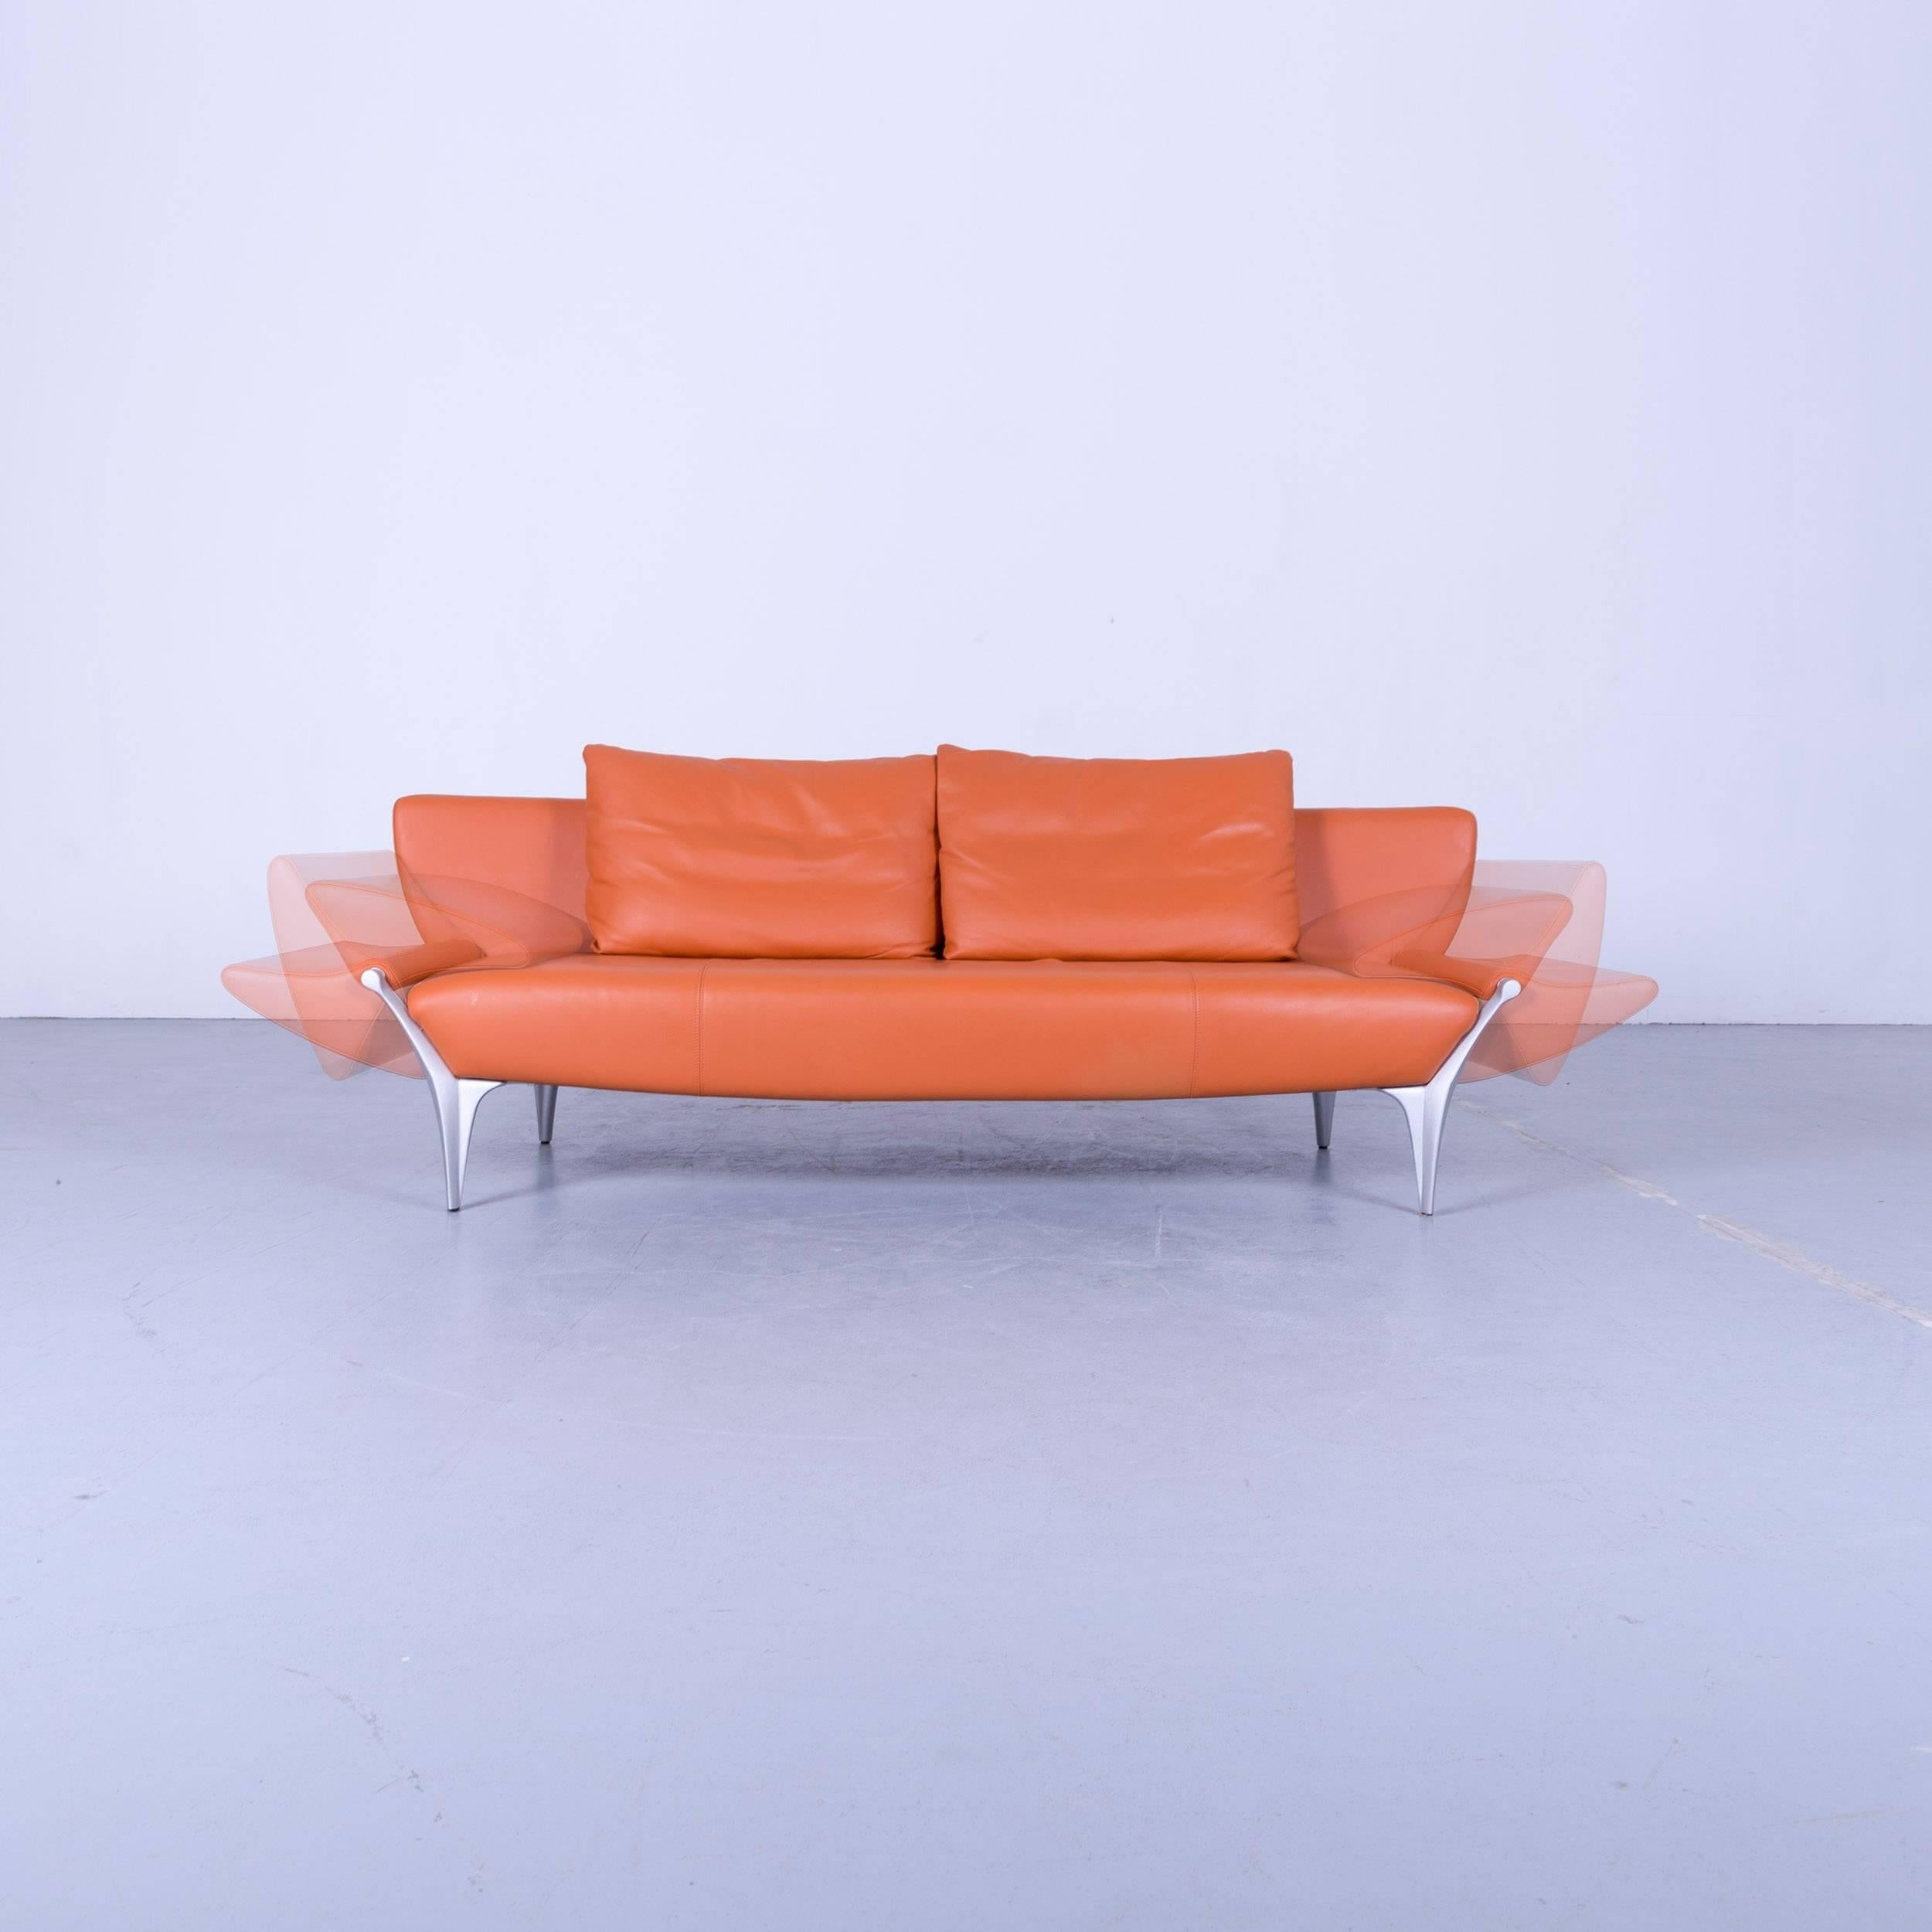 comfortable rolf benz sofa. Rolf Benz Sob 1600 Designer Sofa Leather Orange Three-Seat Function Couch Modern At 1stdibs Comfortable